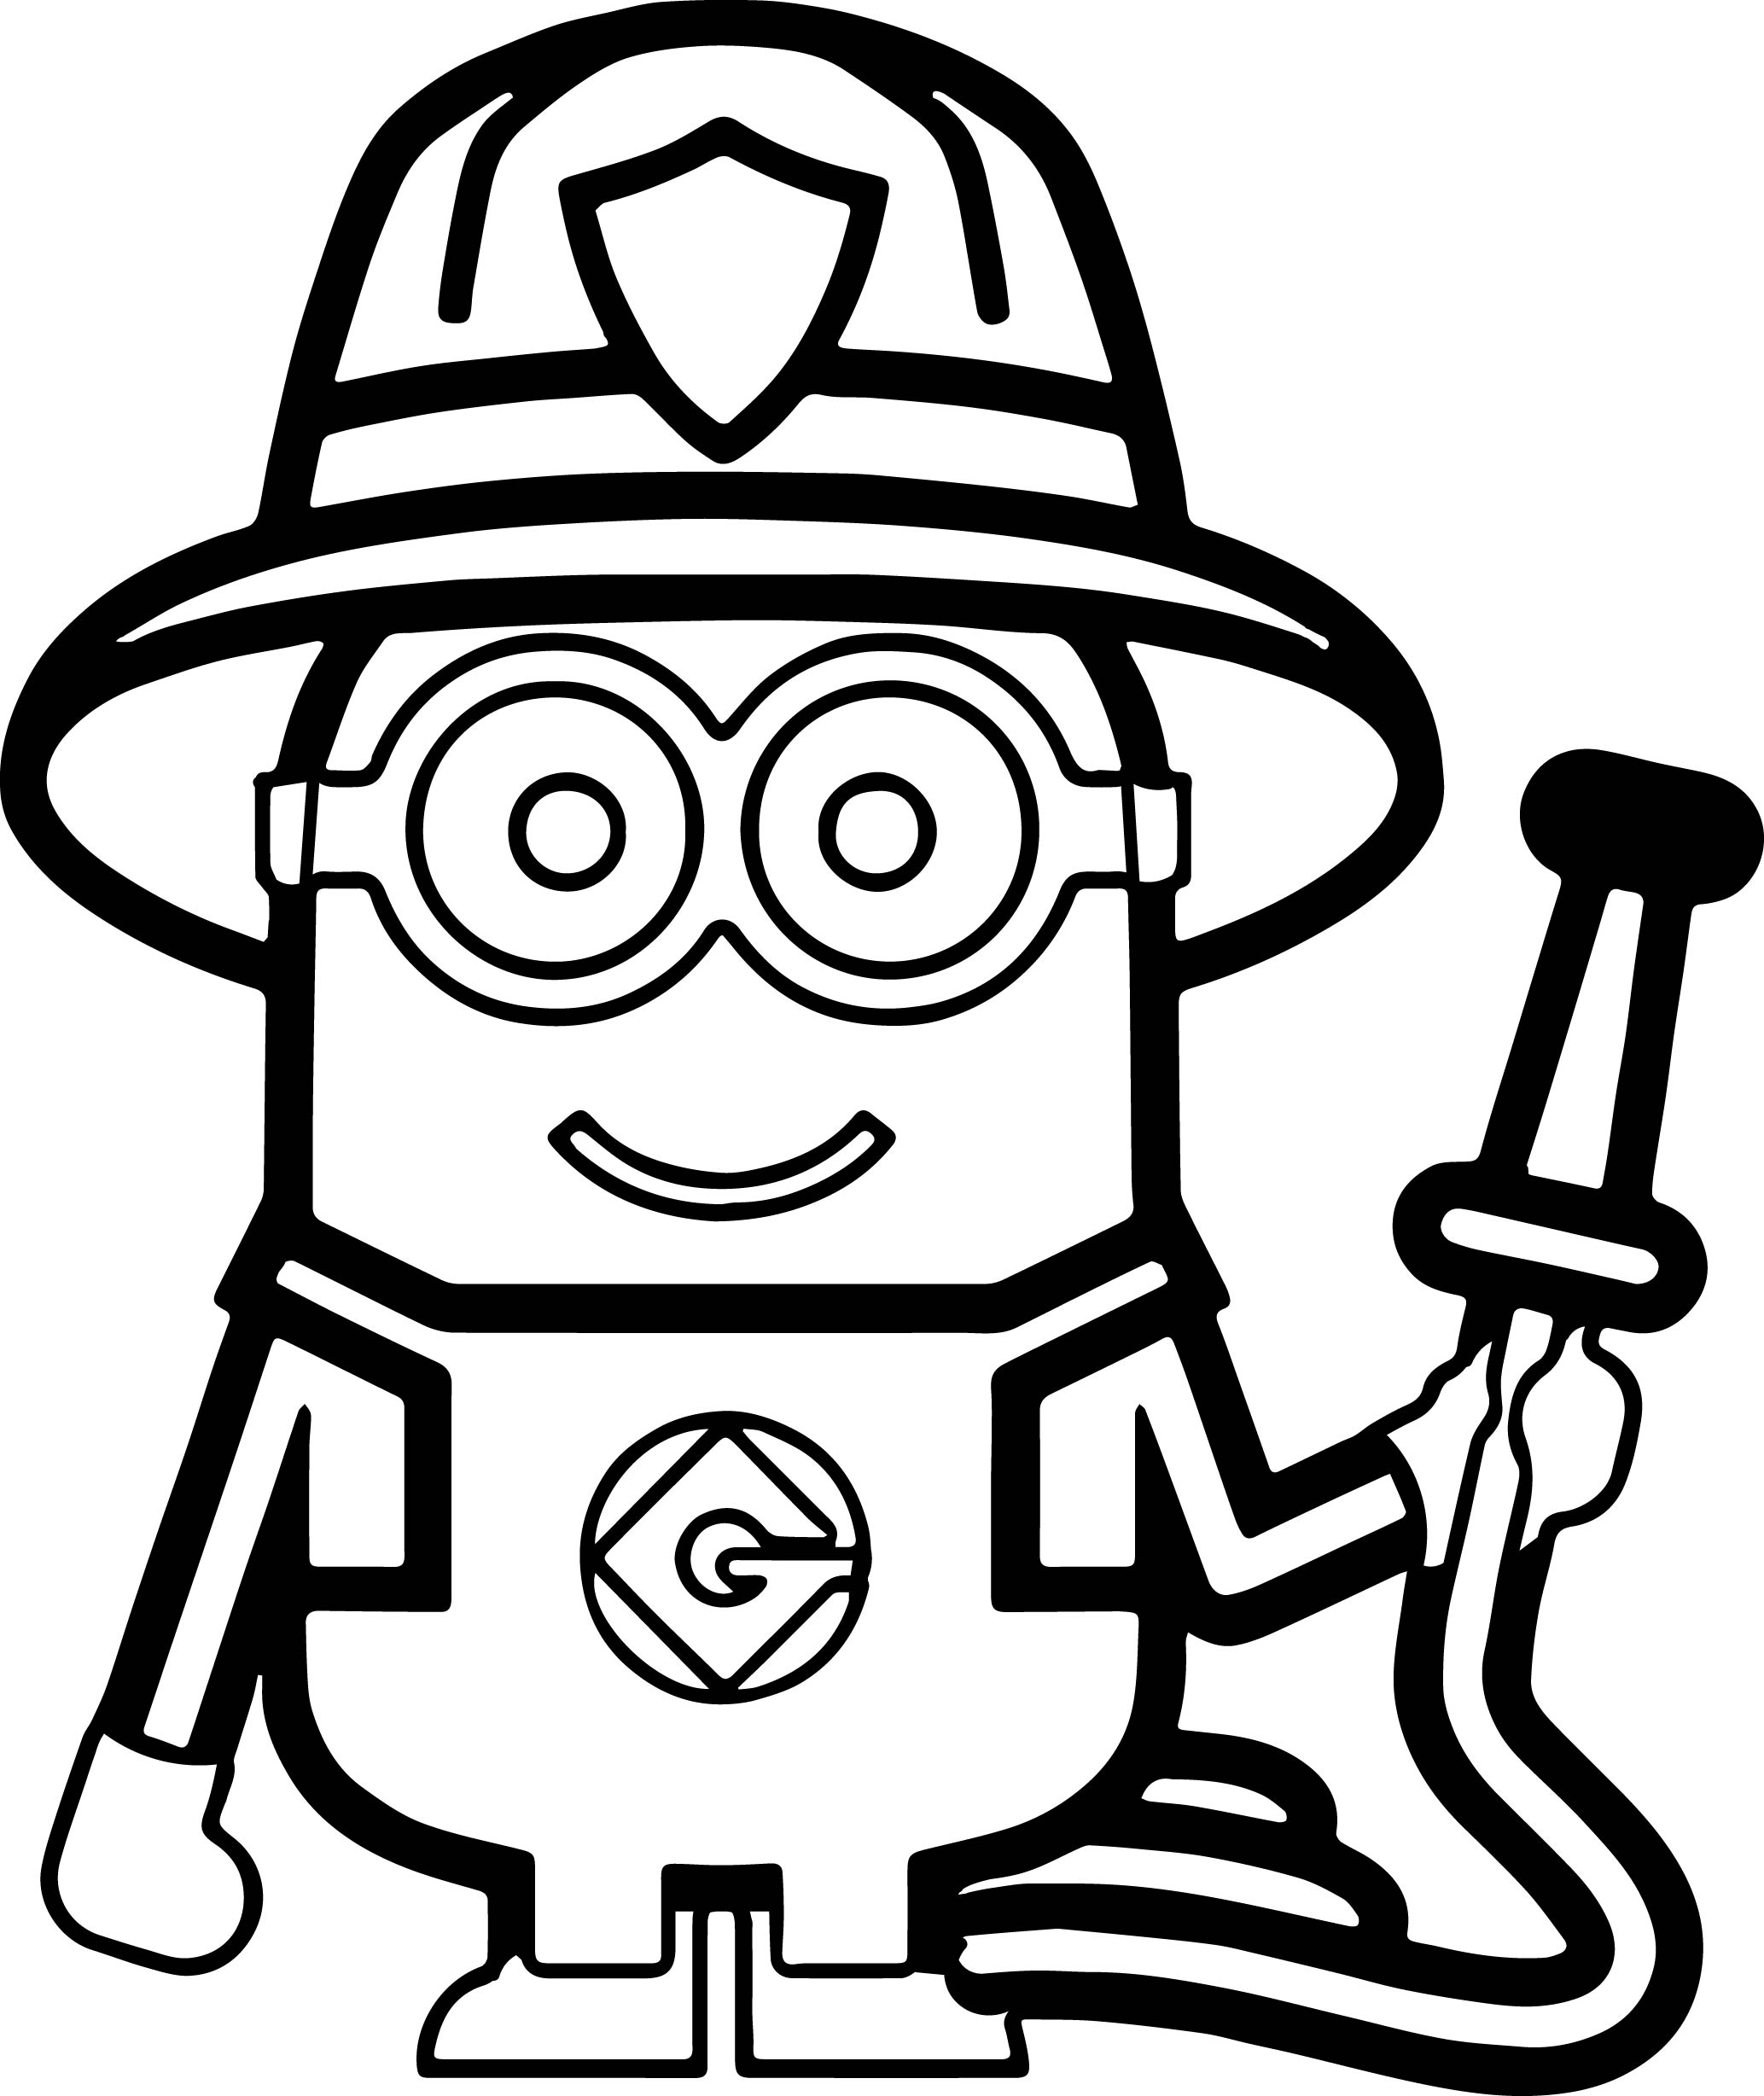 Firefighter Hat Coloring Page Firefighter With Axe In A Fireman Hat Coloring Pages